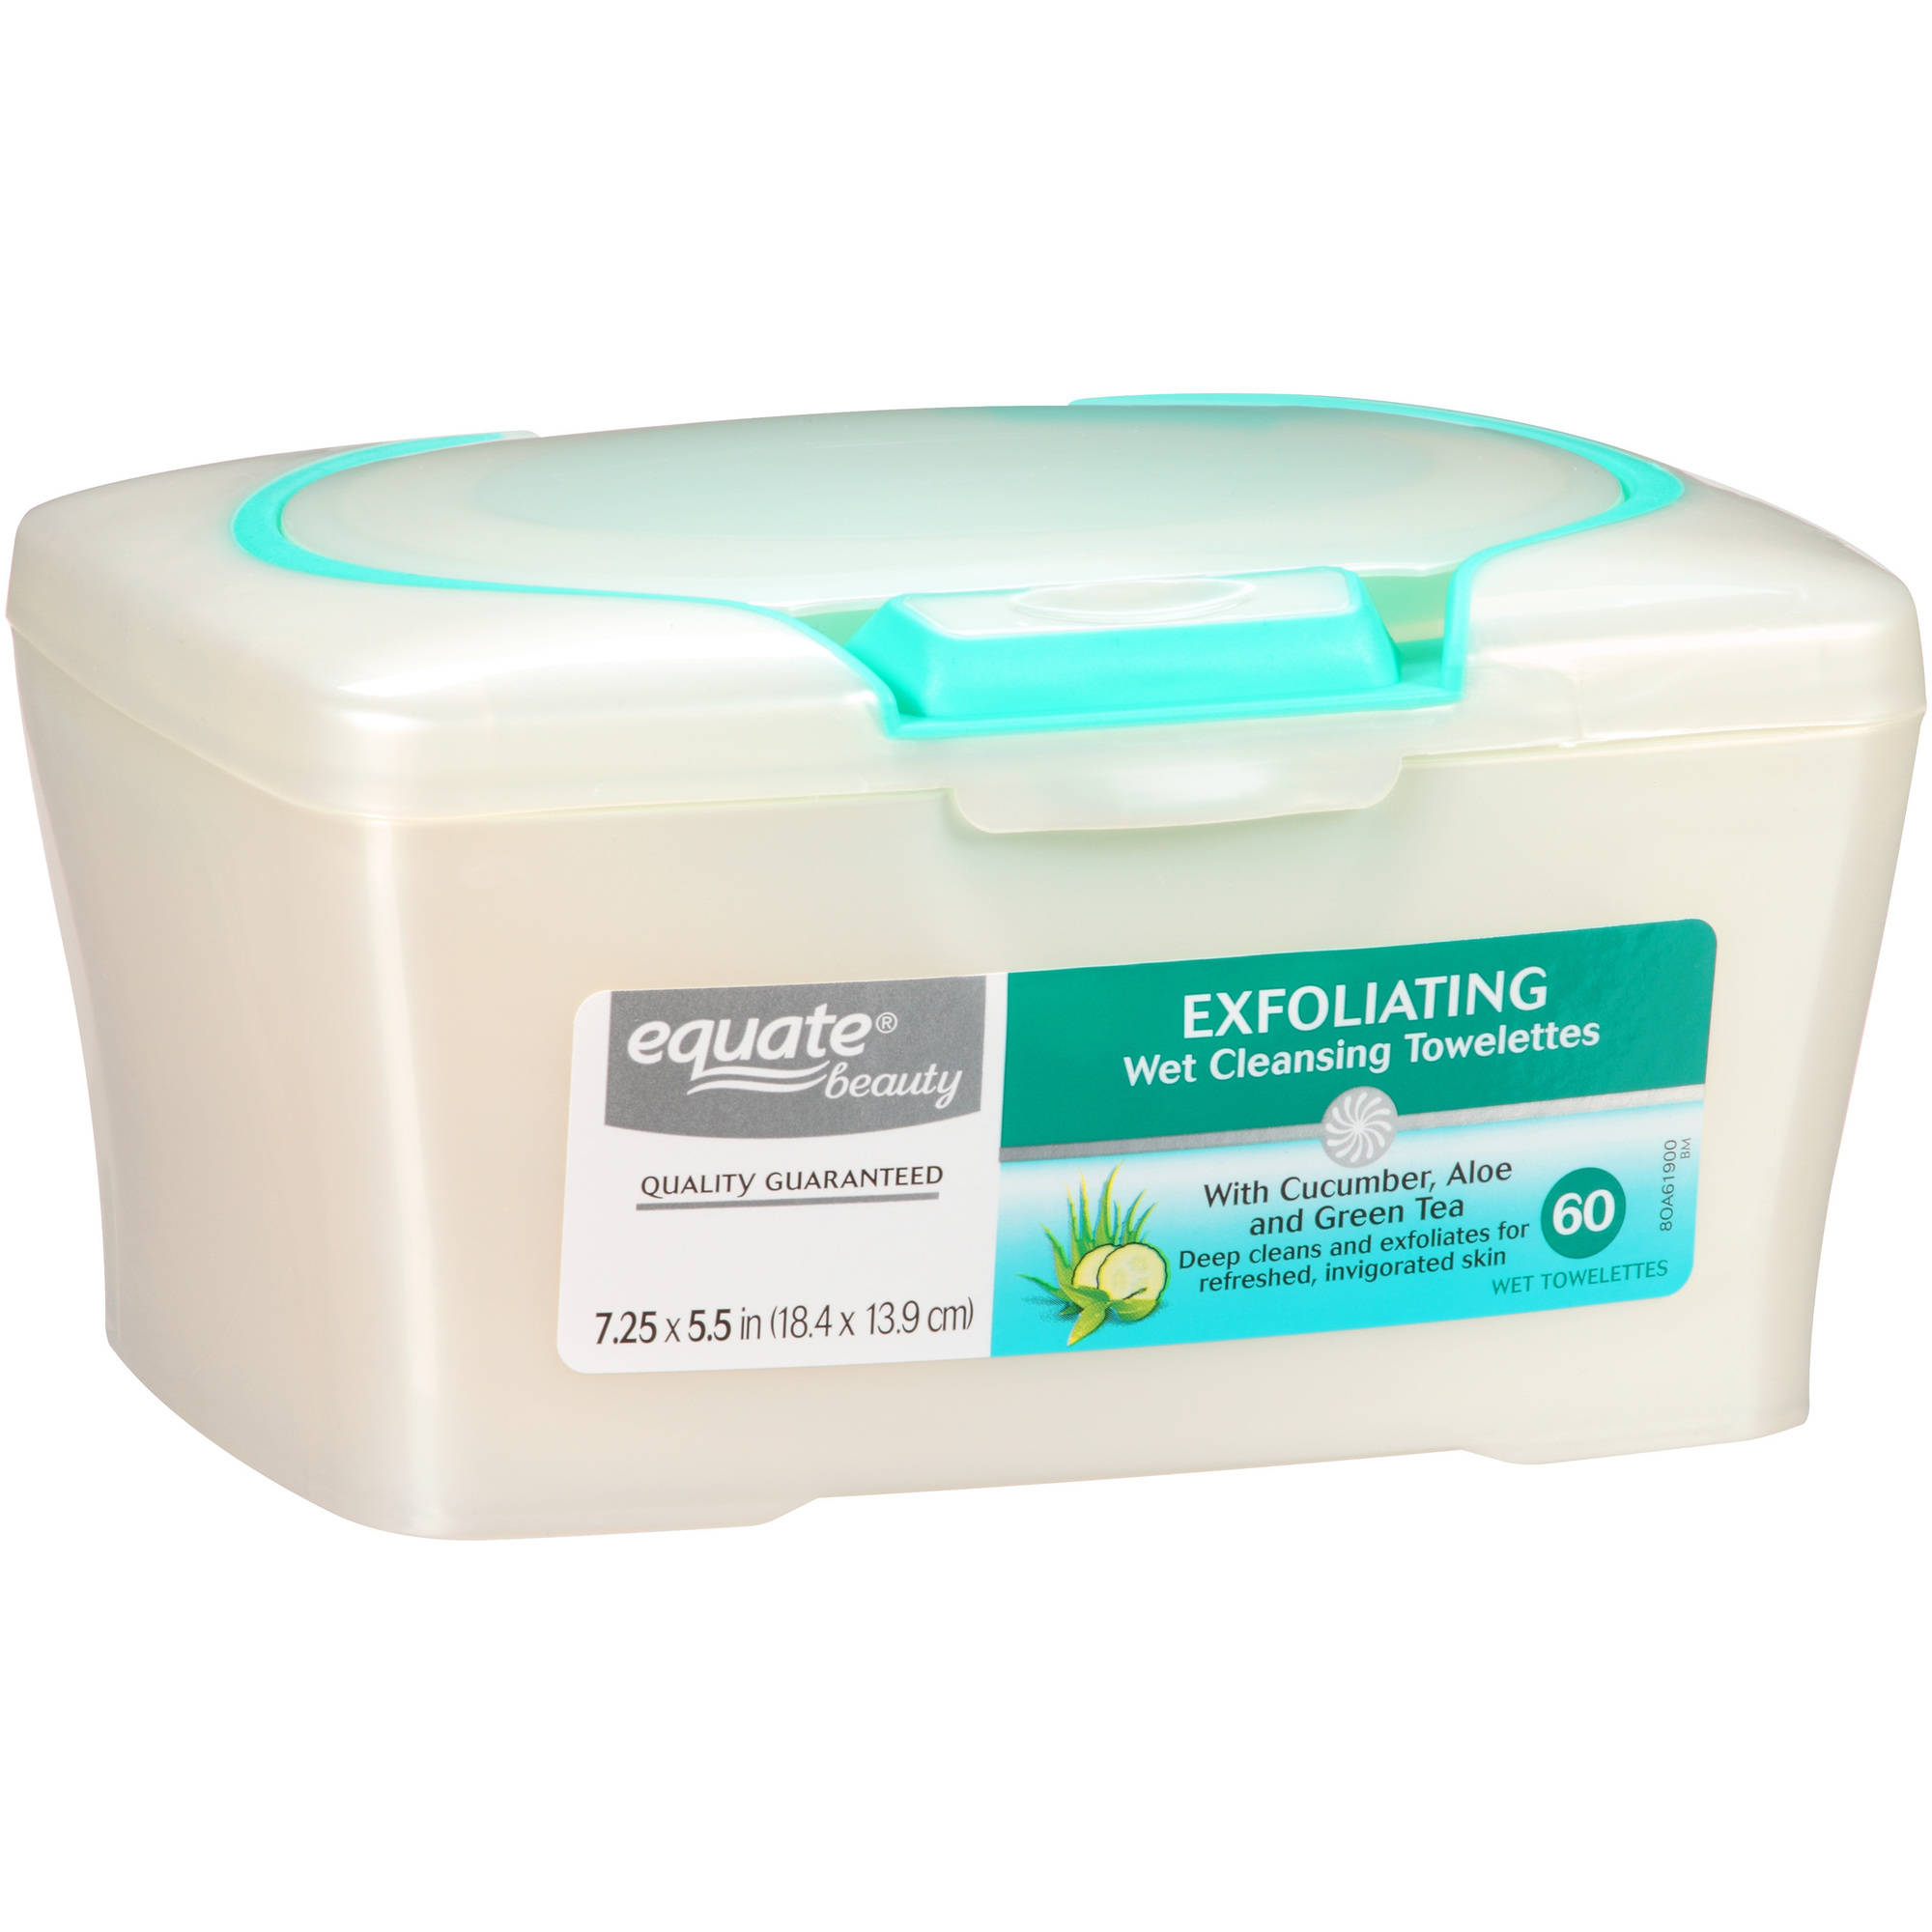 Equate Beauty Exfoliating Wet Cleansing Towelettes, 60 Ct